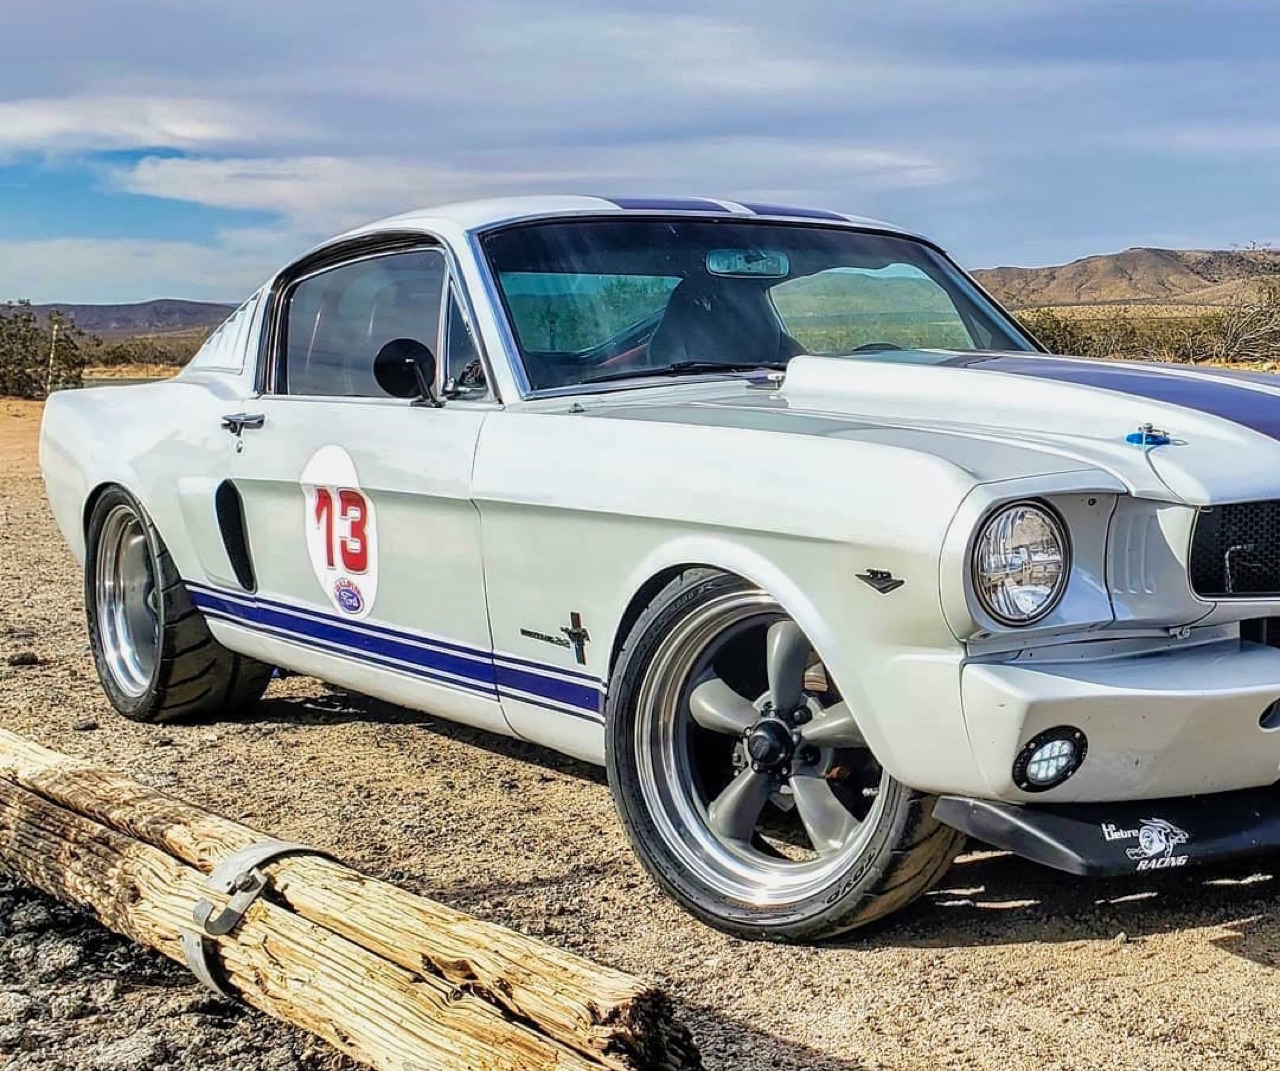 '66 Ford Mustang Fastback - Le gros Coyote ! 1